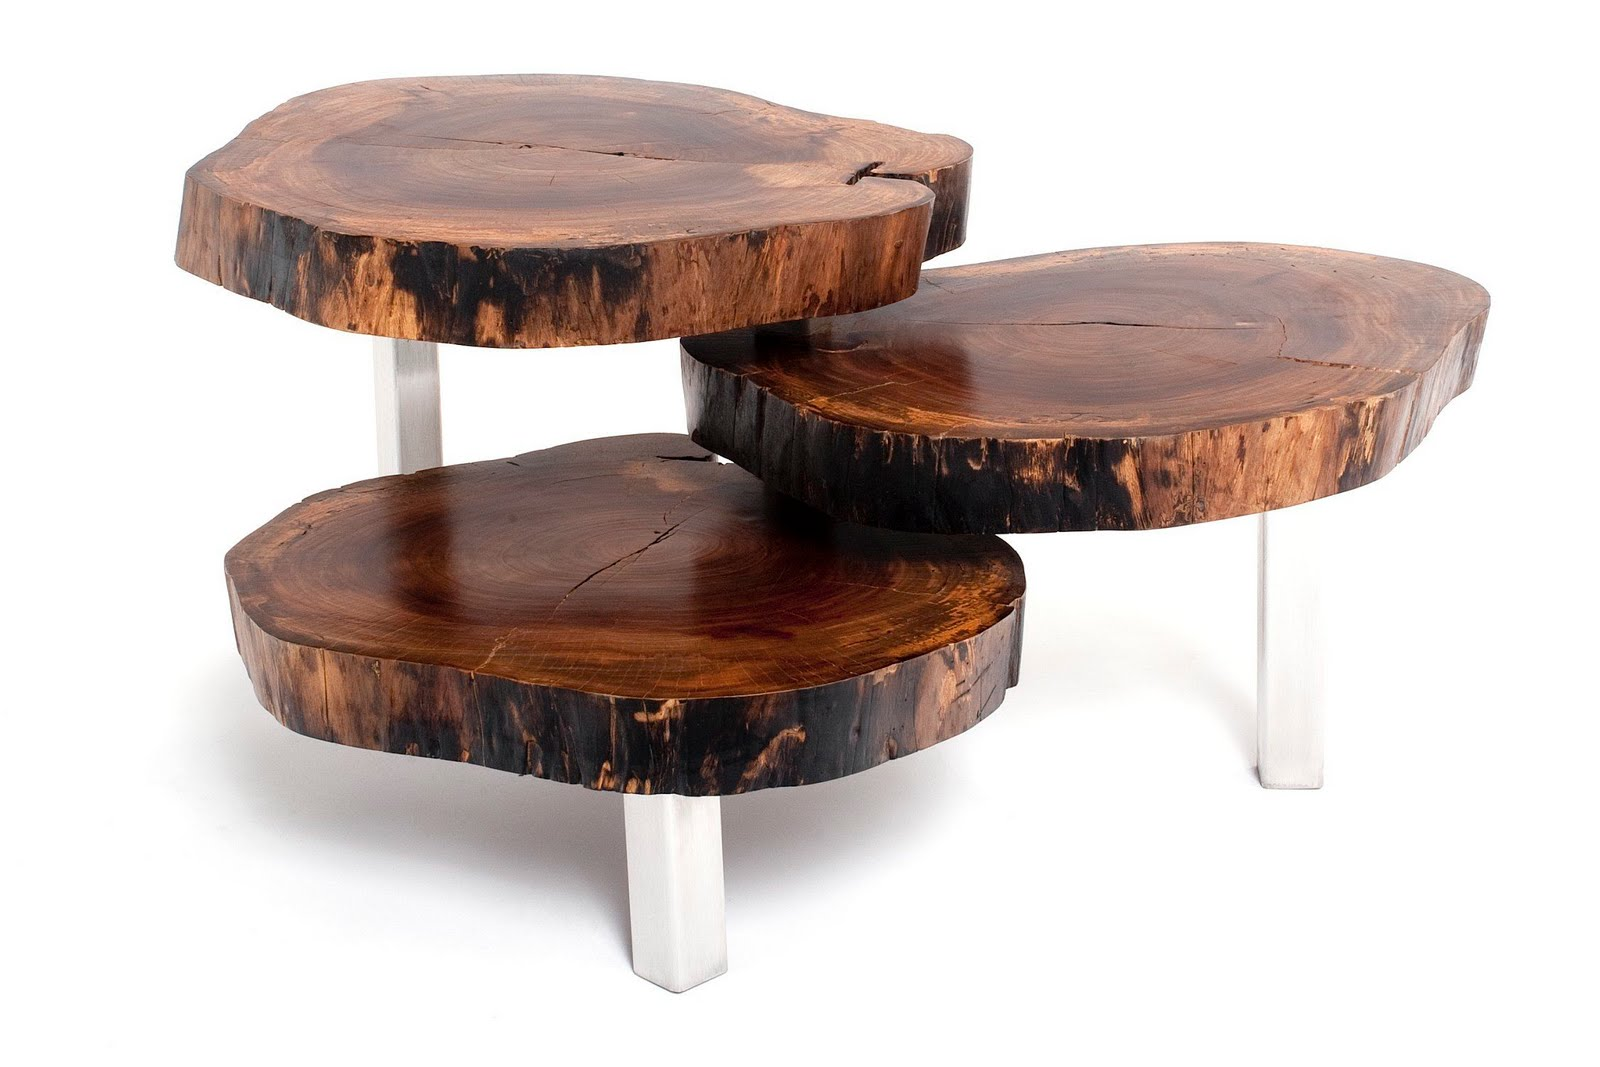 Eco friendly exotic wood tables globally gorgeous Luxury wood furniture